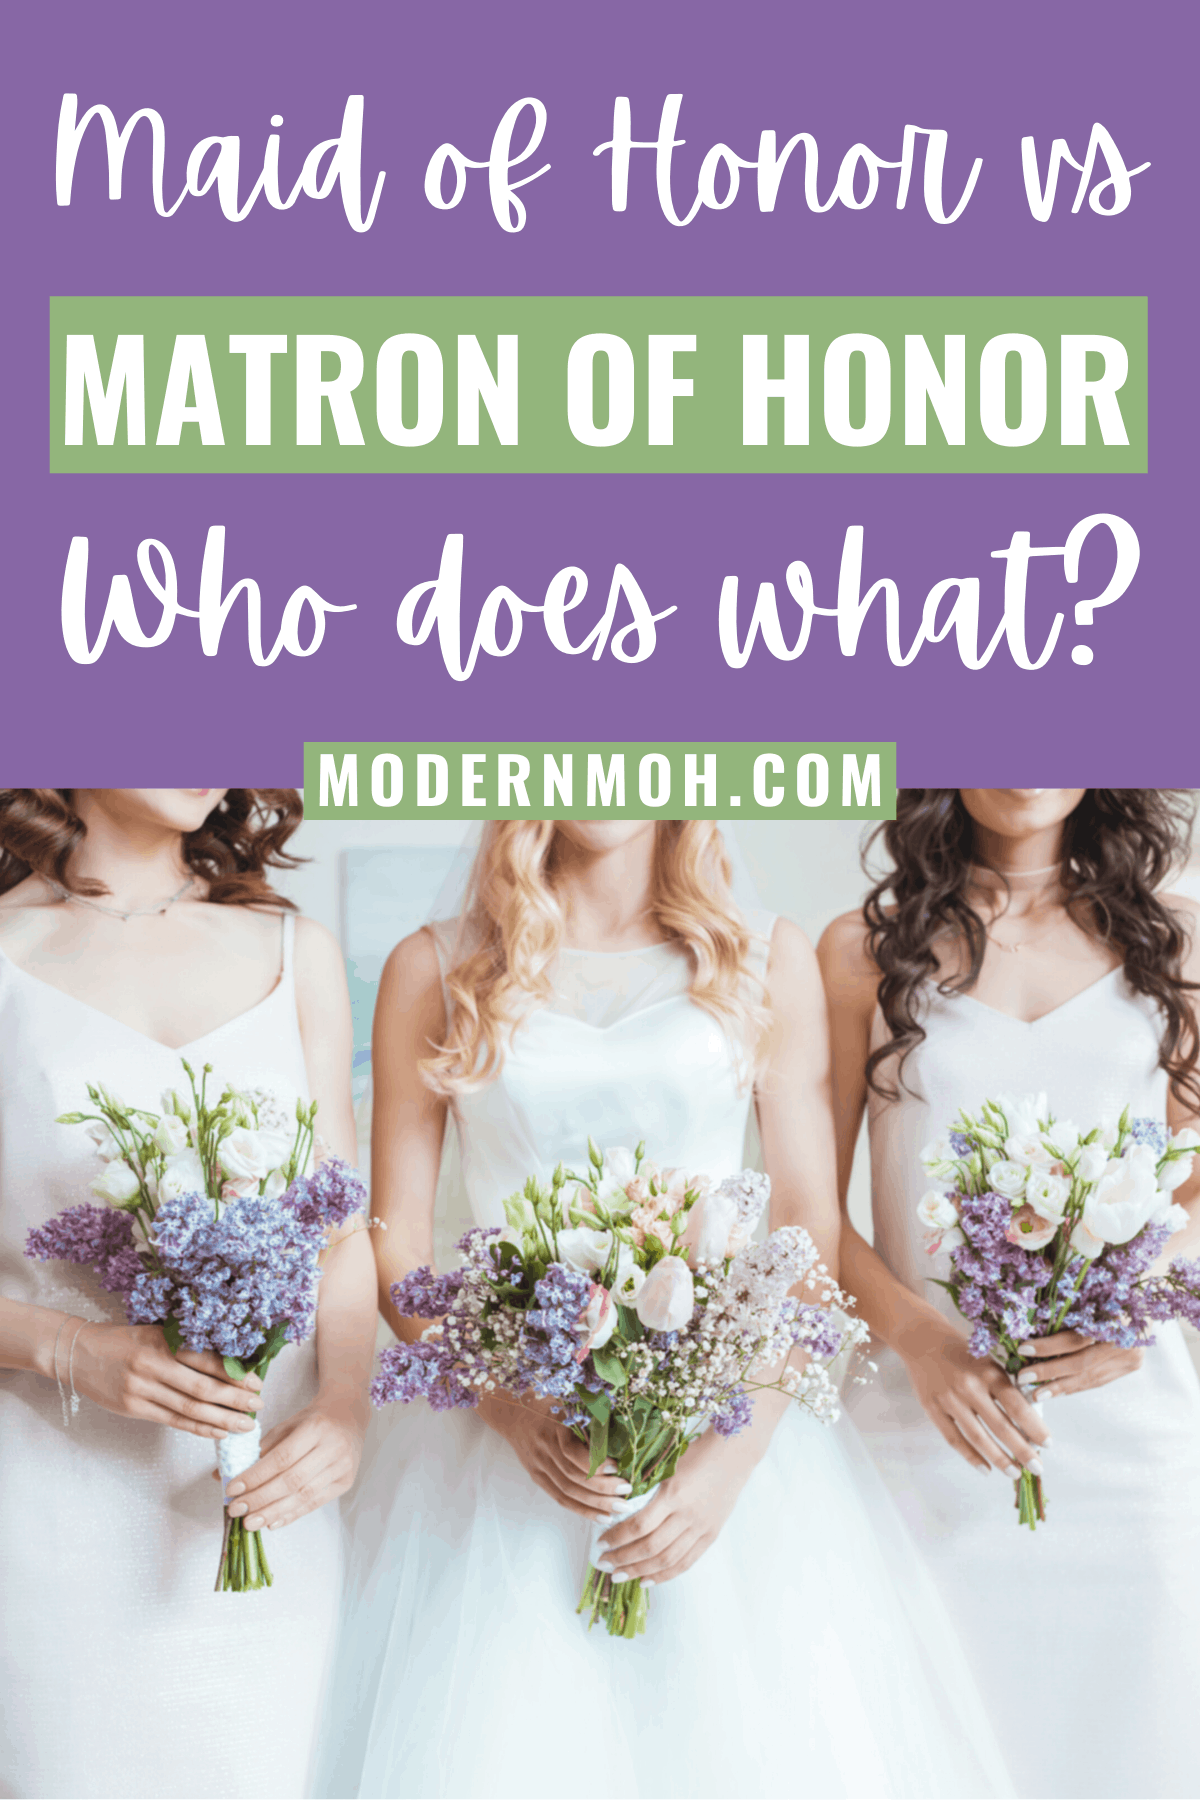 Maid of Honor vs Matron of Honor: Who Does What?